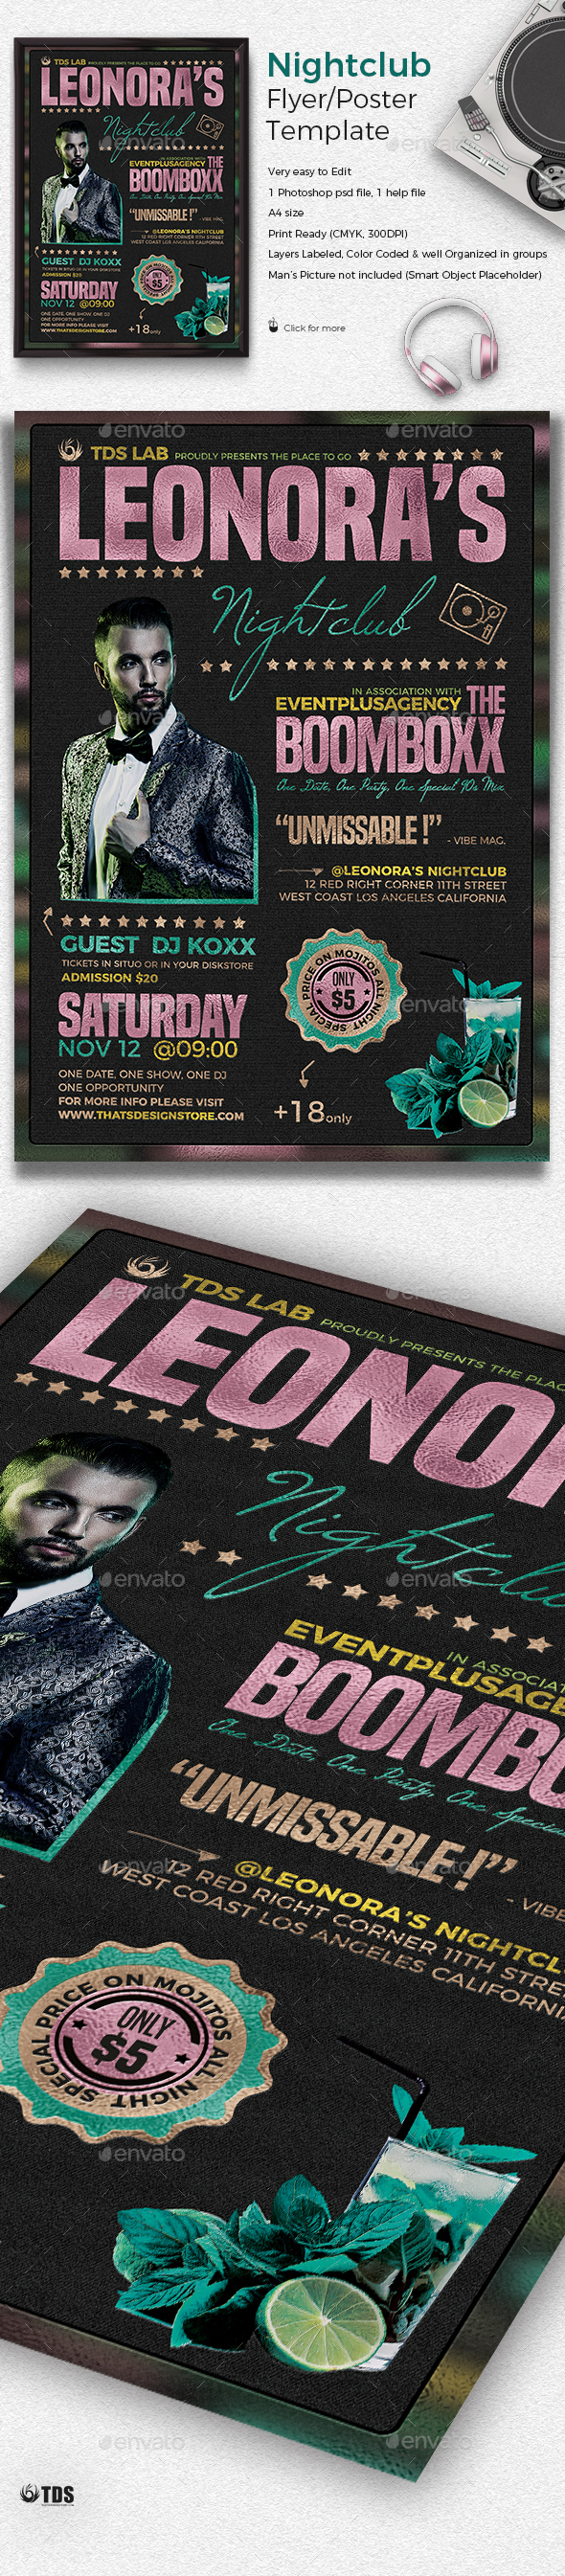 Nightclub Promotion Flyer Template - Clubs & Parties Events